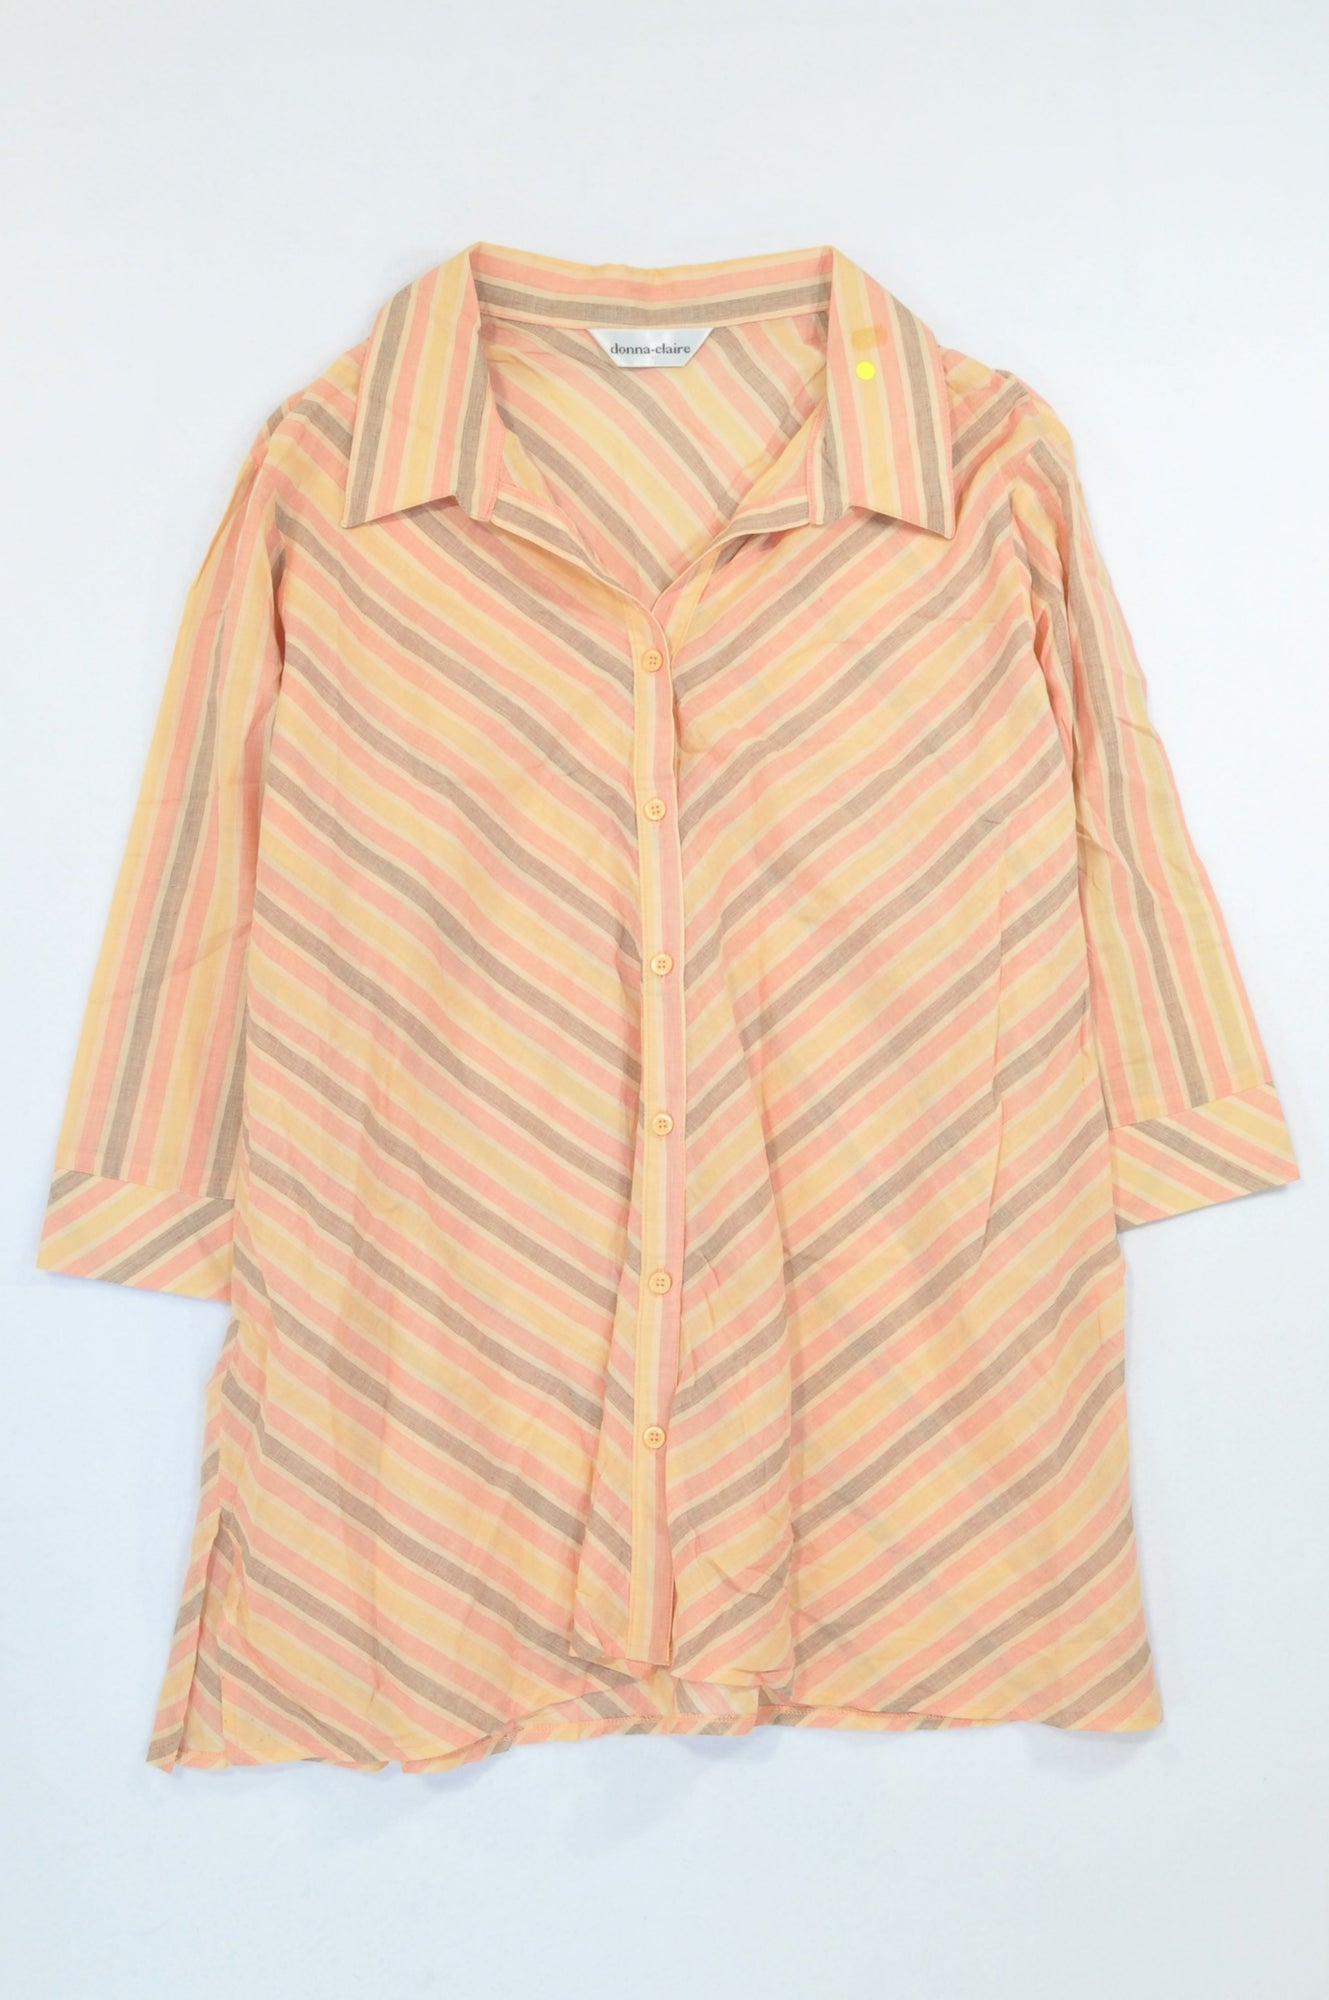 Donna Claire Peach & Pink Diagonal Stripe Lightweight Blouse Women Size 22